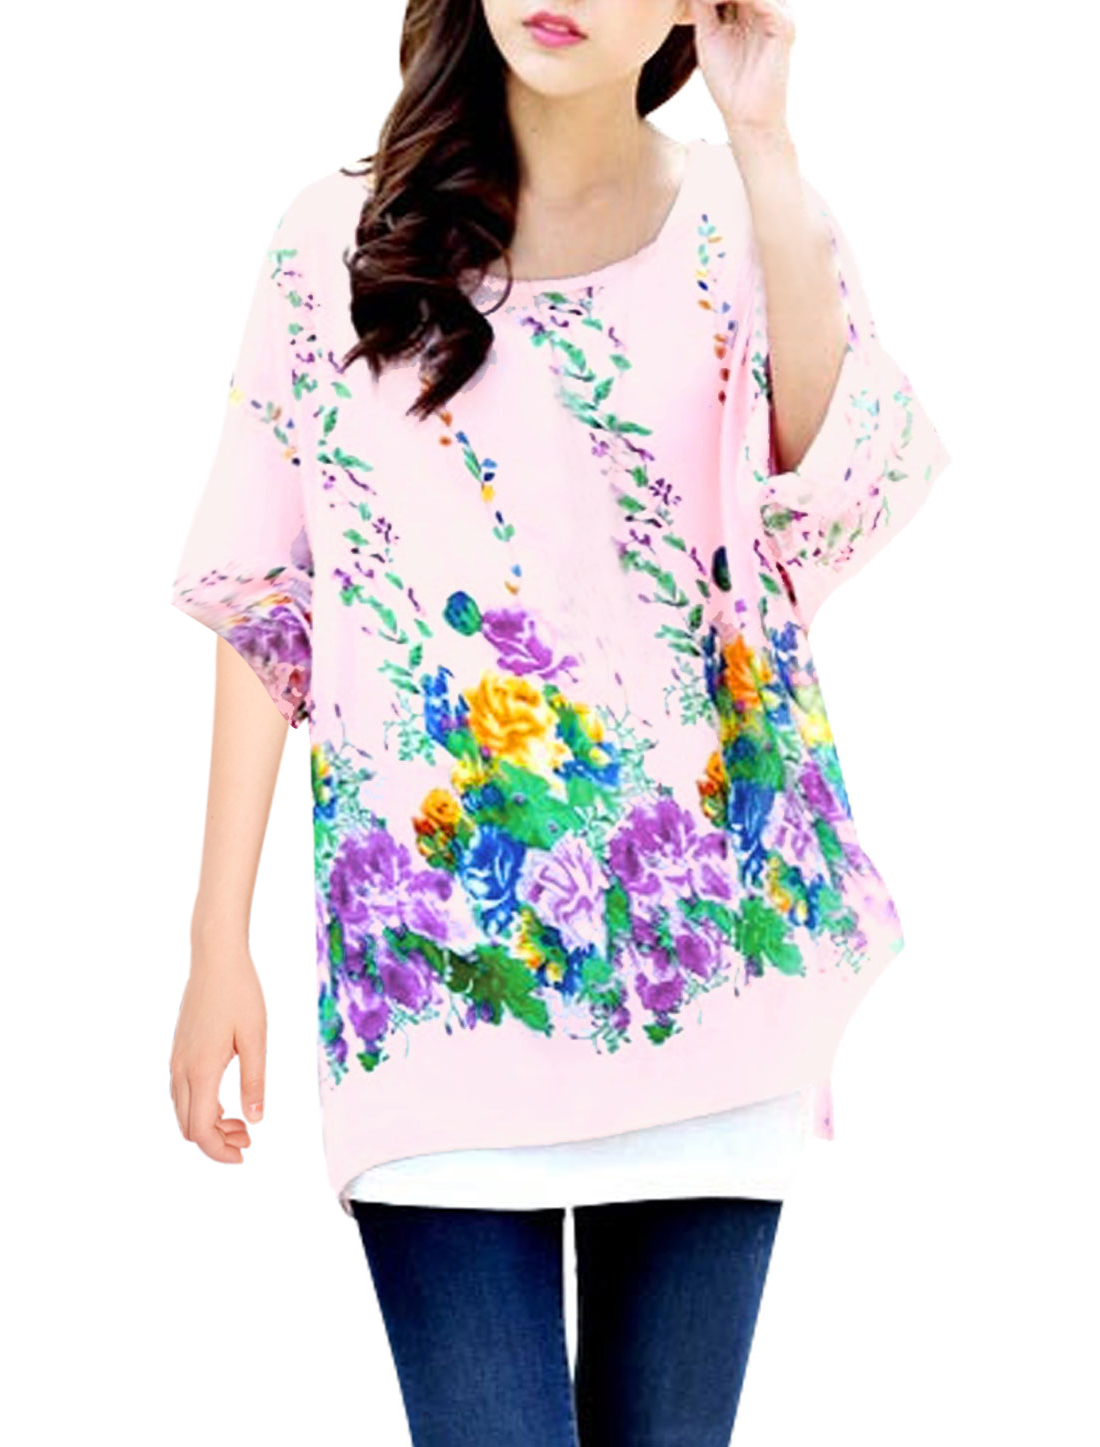 Lady's Round Neck Batwing Sleeve Floral Prints Chiffon Blouse Pink S